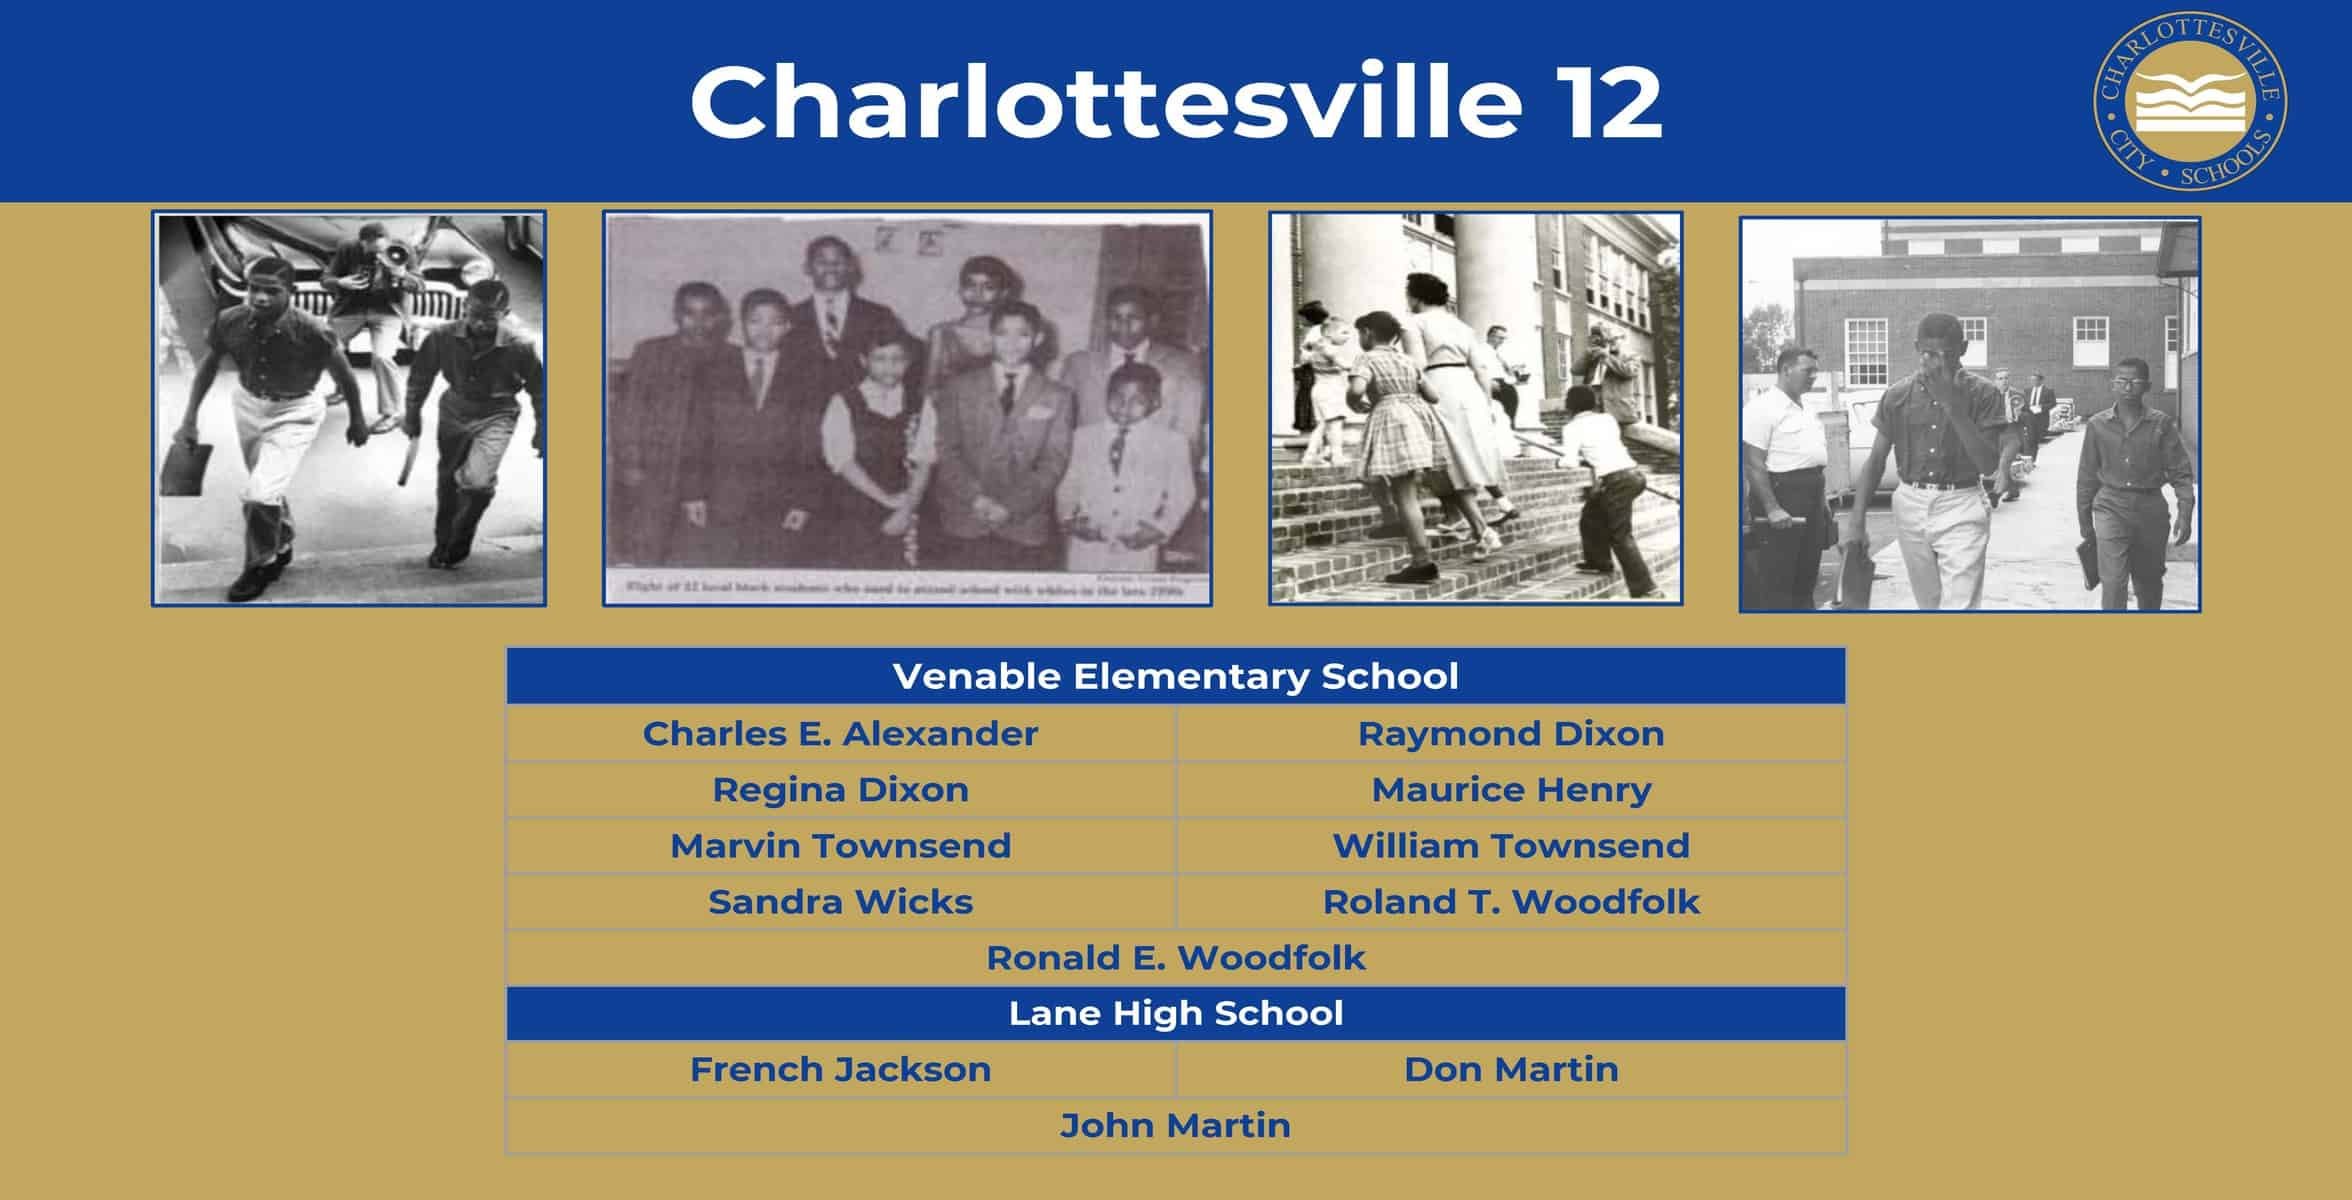 Slide showing pictures of the Charlottesville 12 and list of their names.